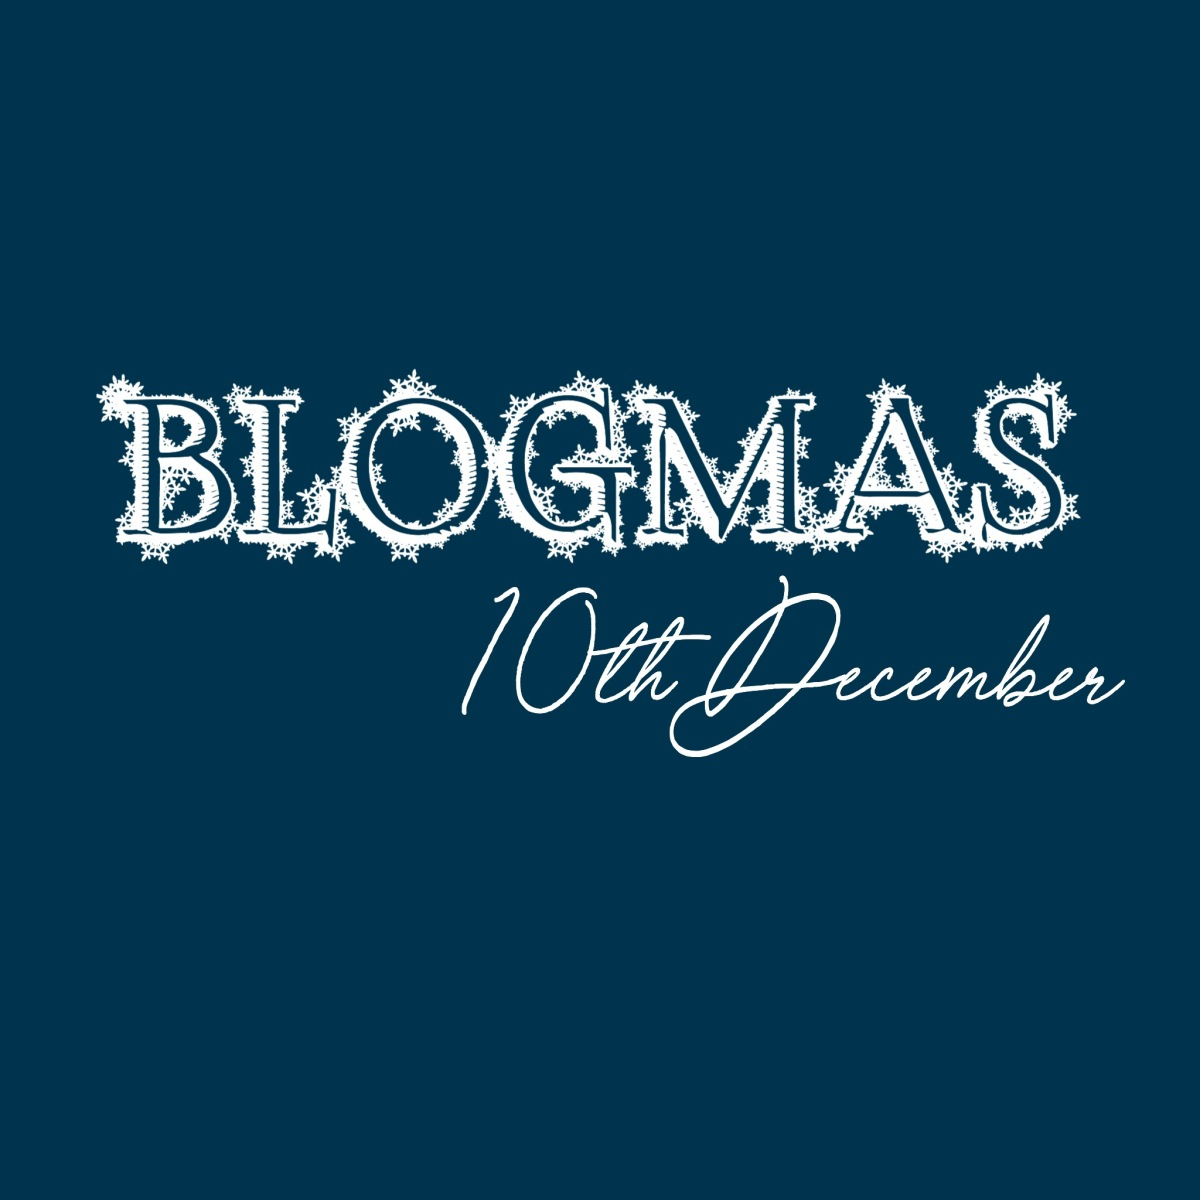 Blogmas - Top Christmas Gifts For Girls